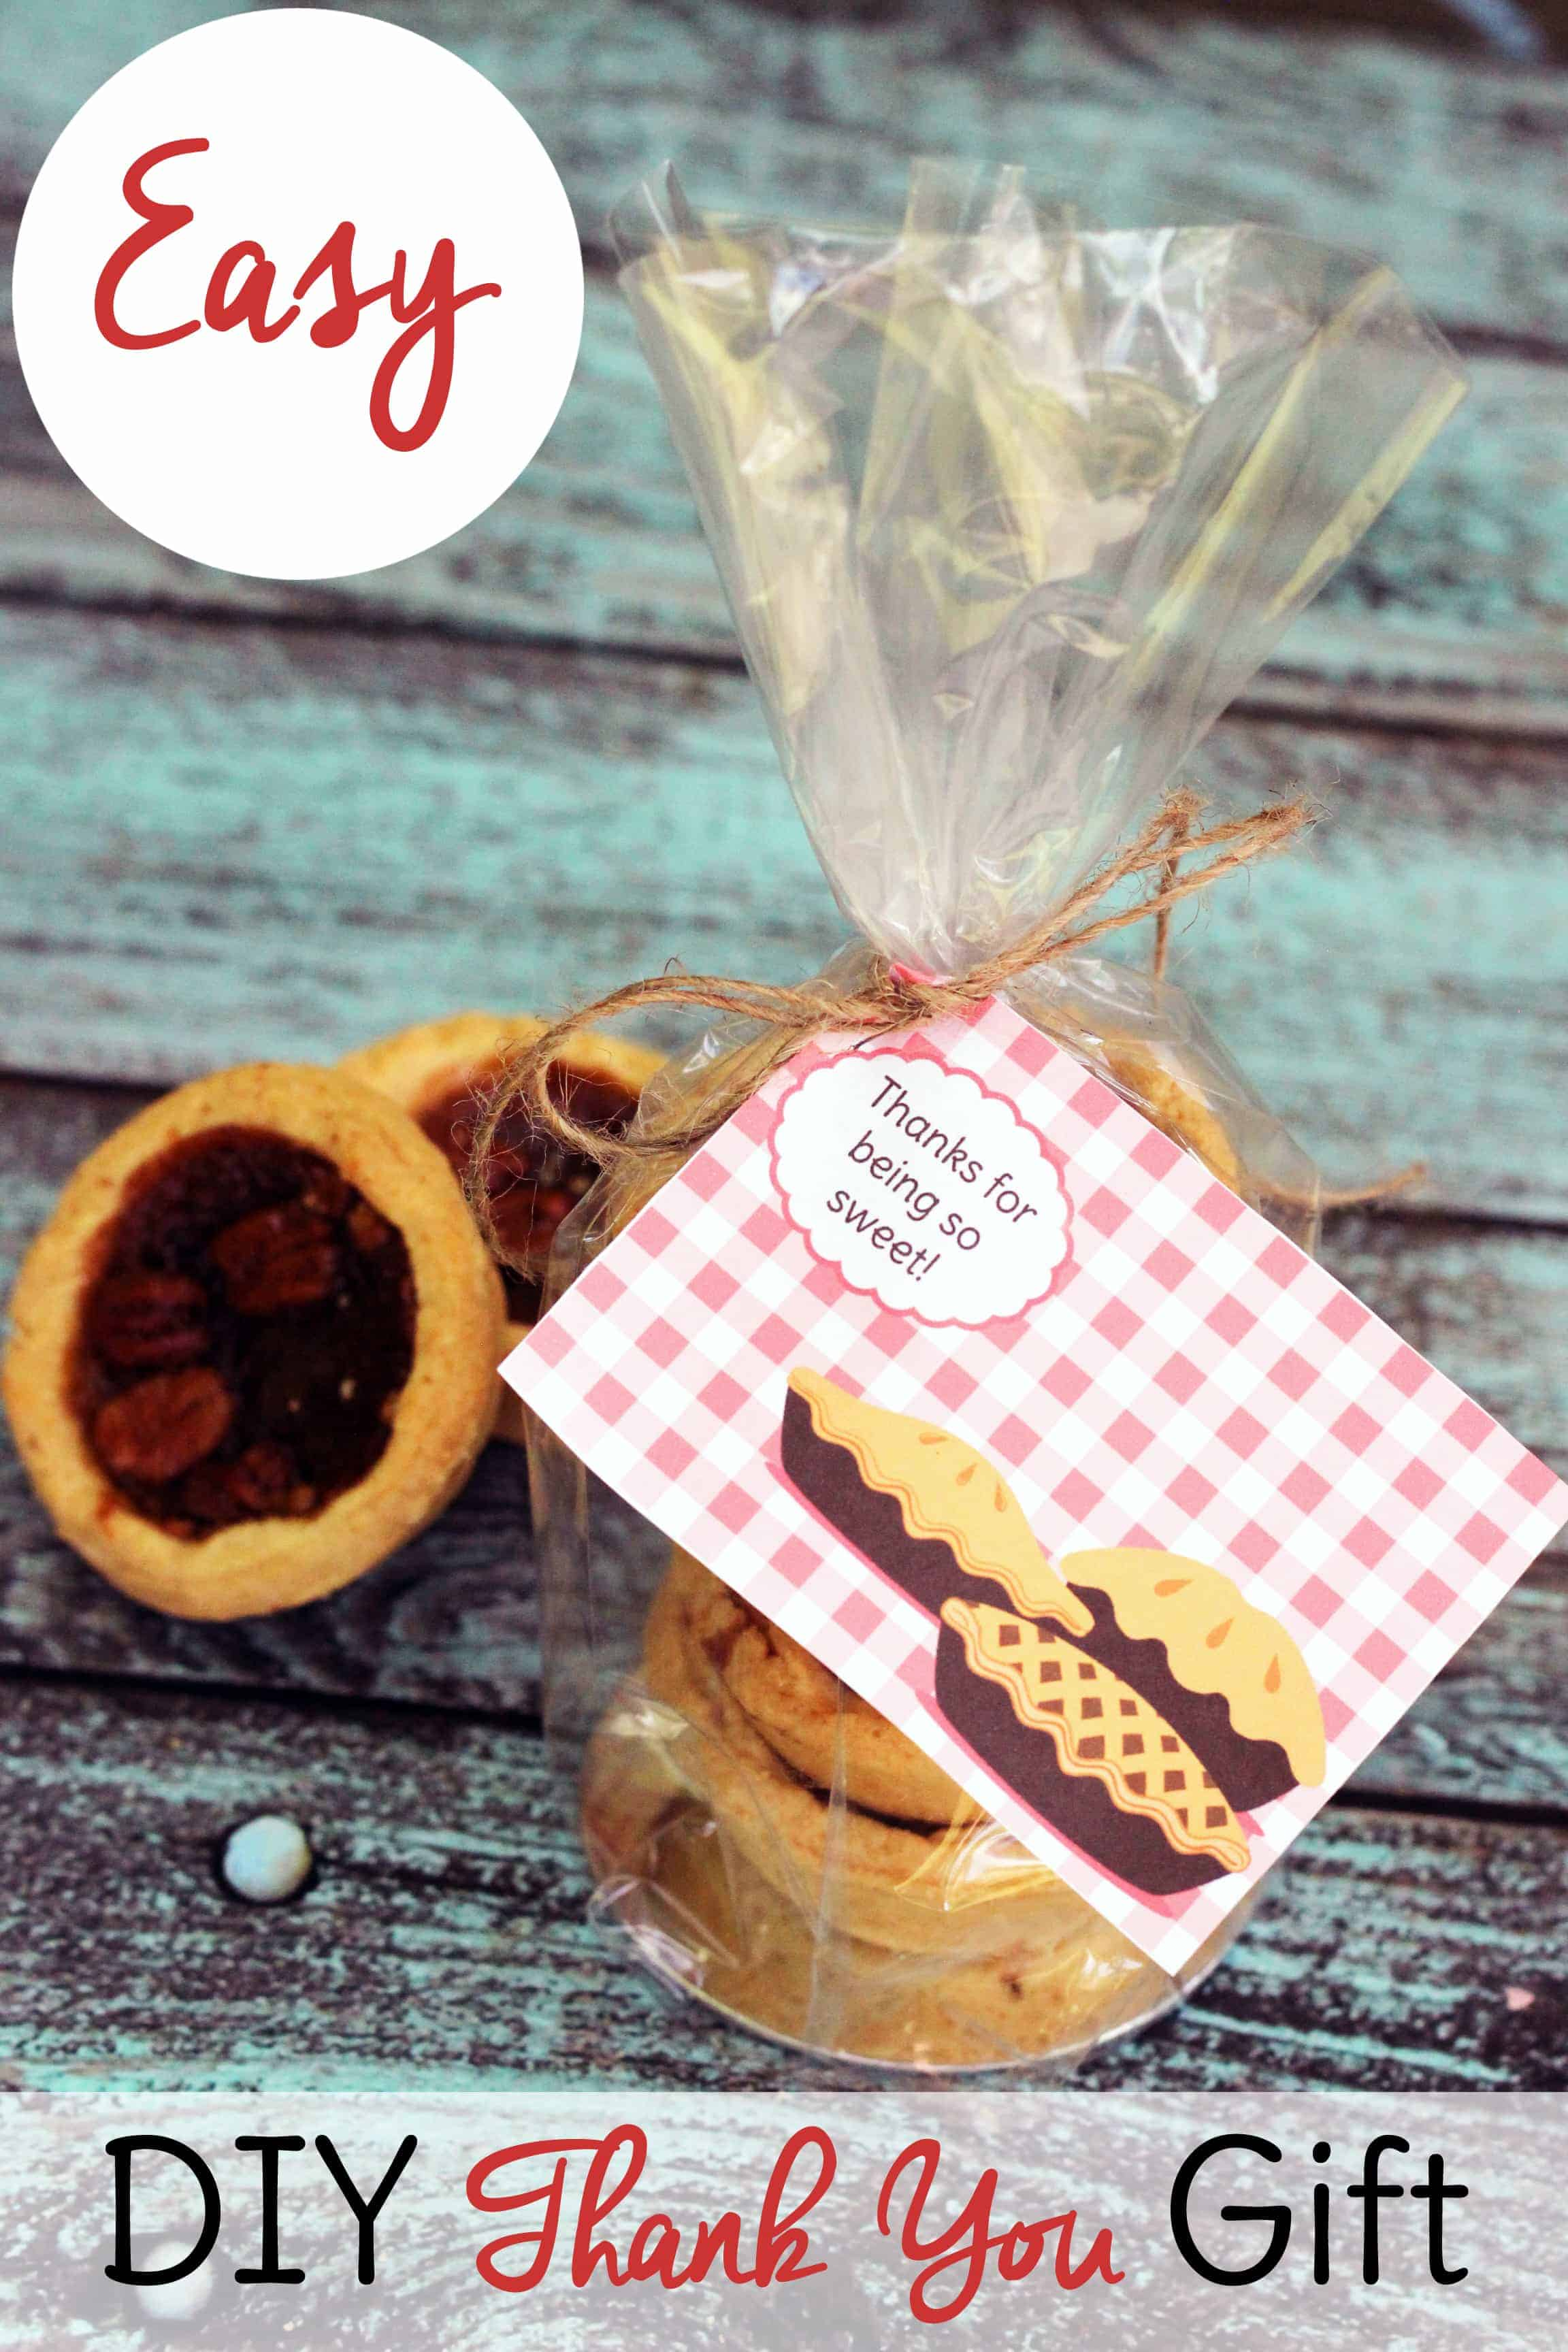 This free printable coupled with sweet treats makes perfect DIY thank you gifts for coworkers, teachers, and more.